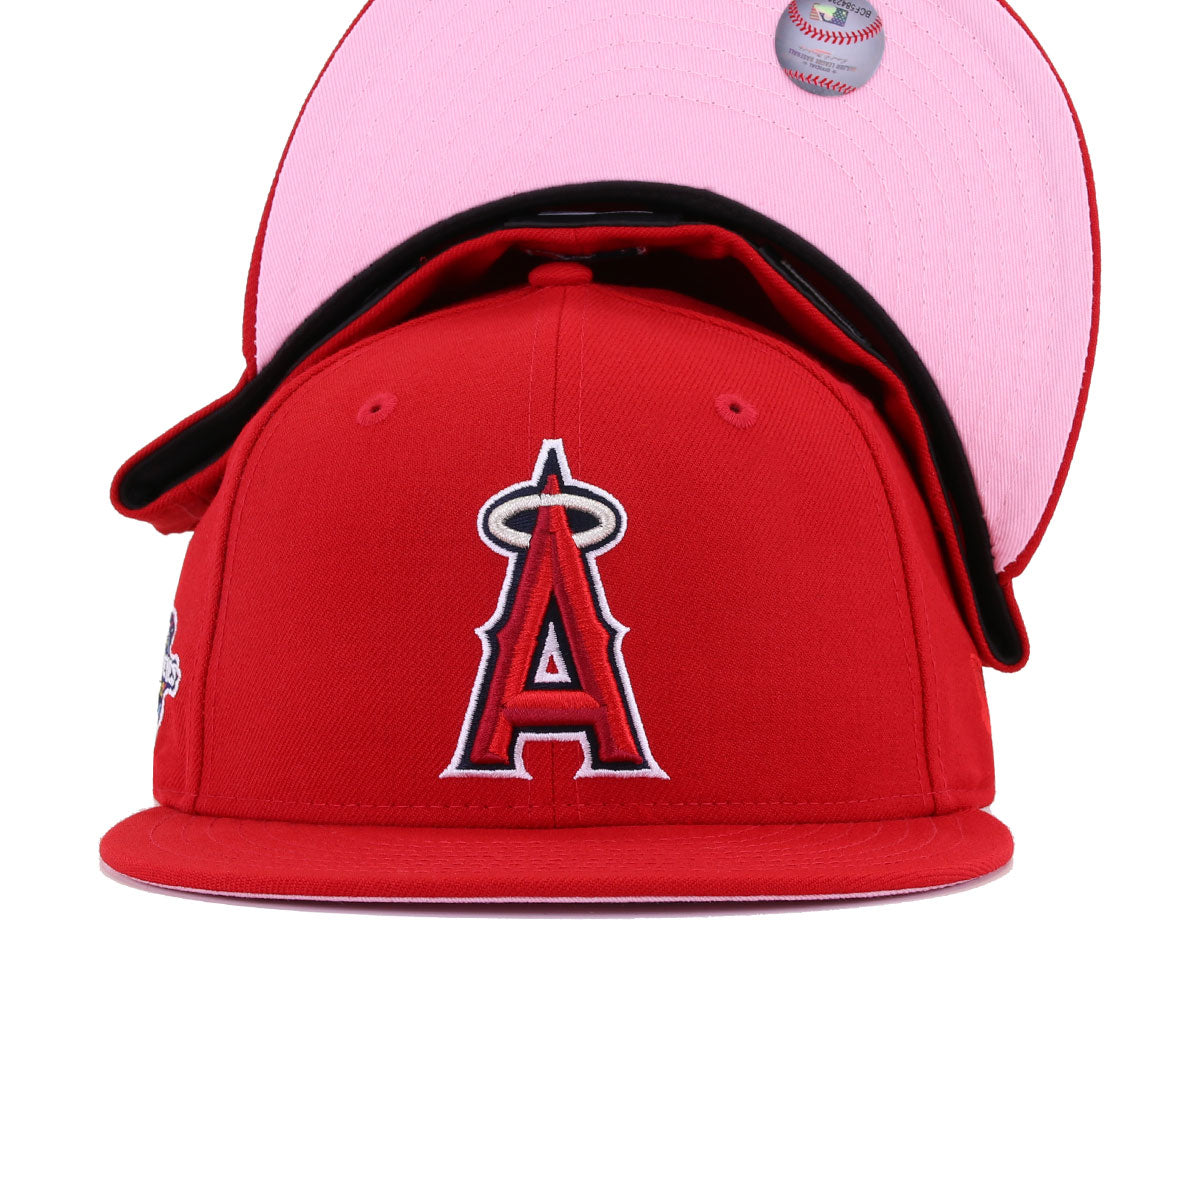 Los Angeles Angels Scarlet 2002 World Series Pink Bottom New Era 59Fifty Fitted